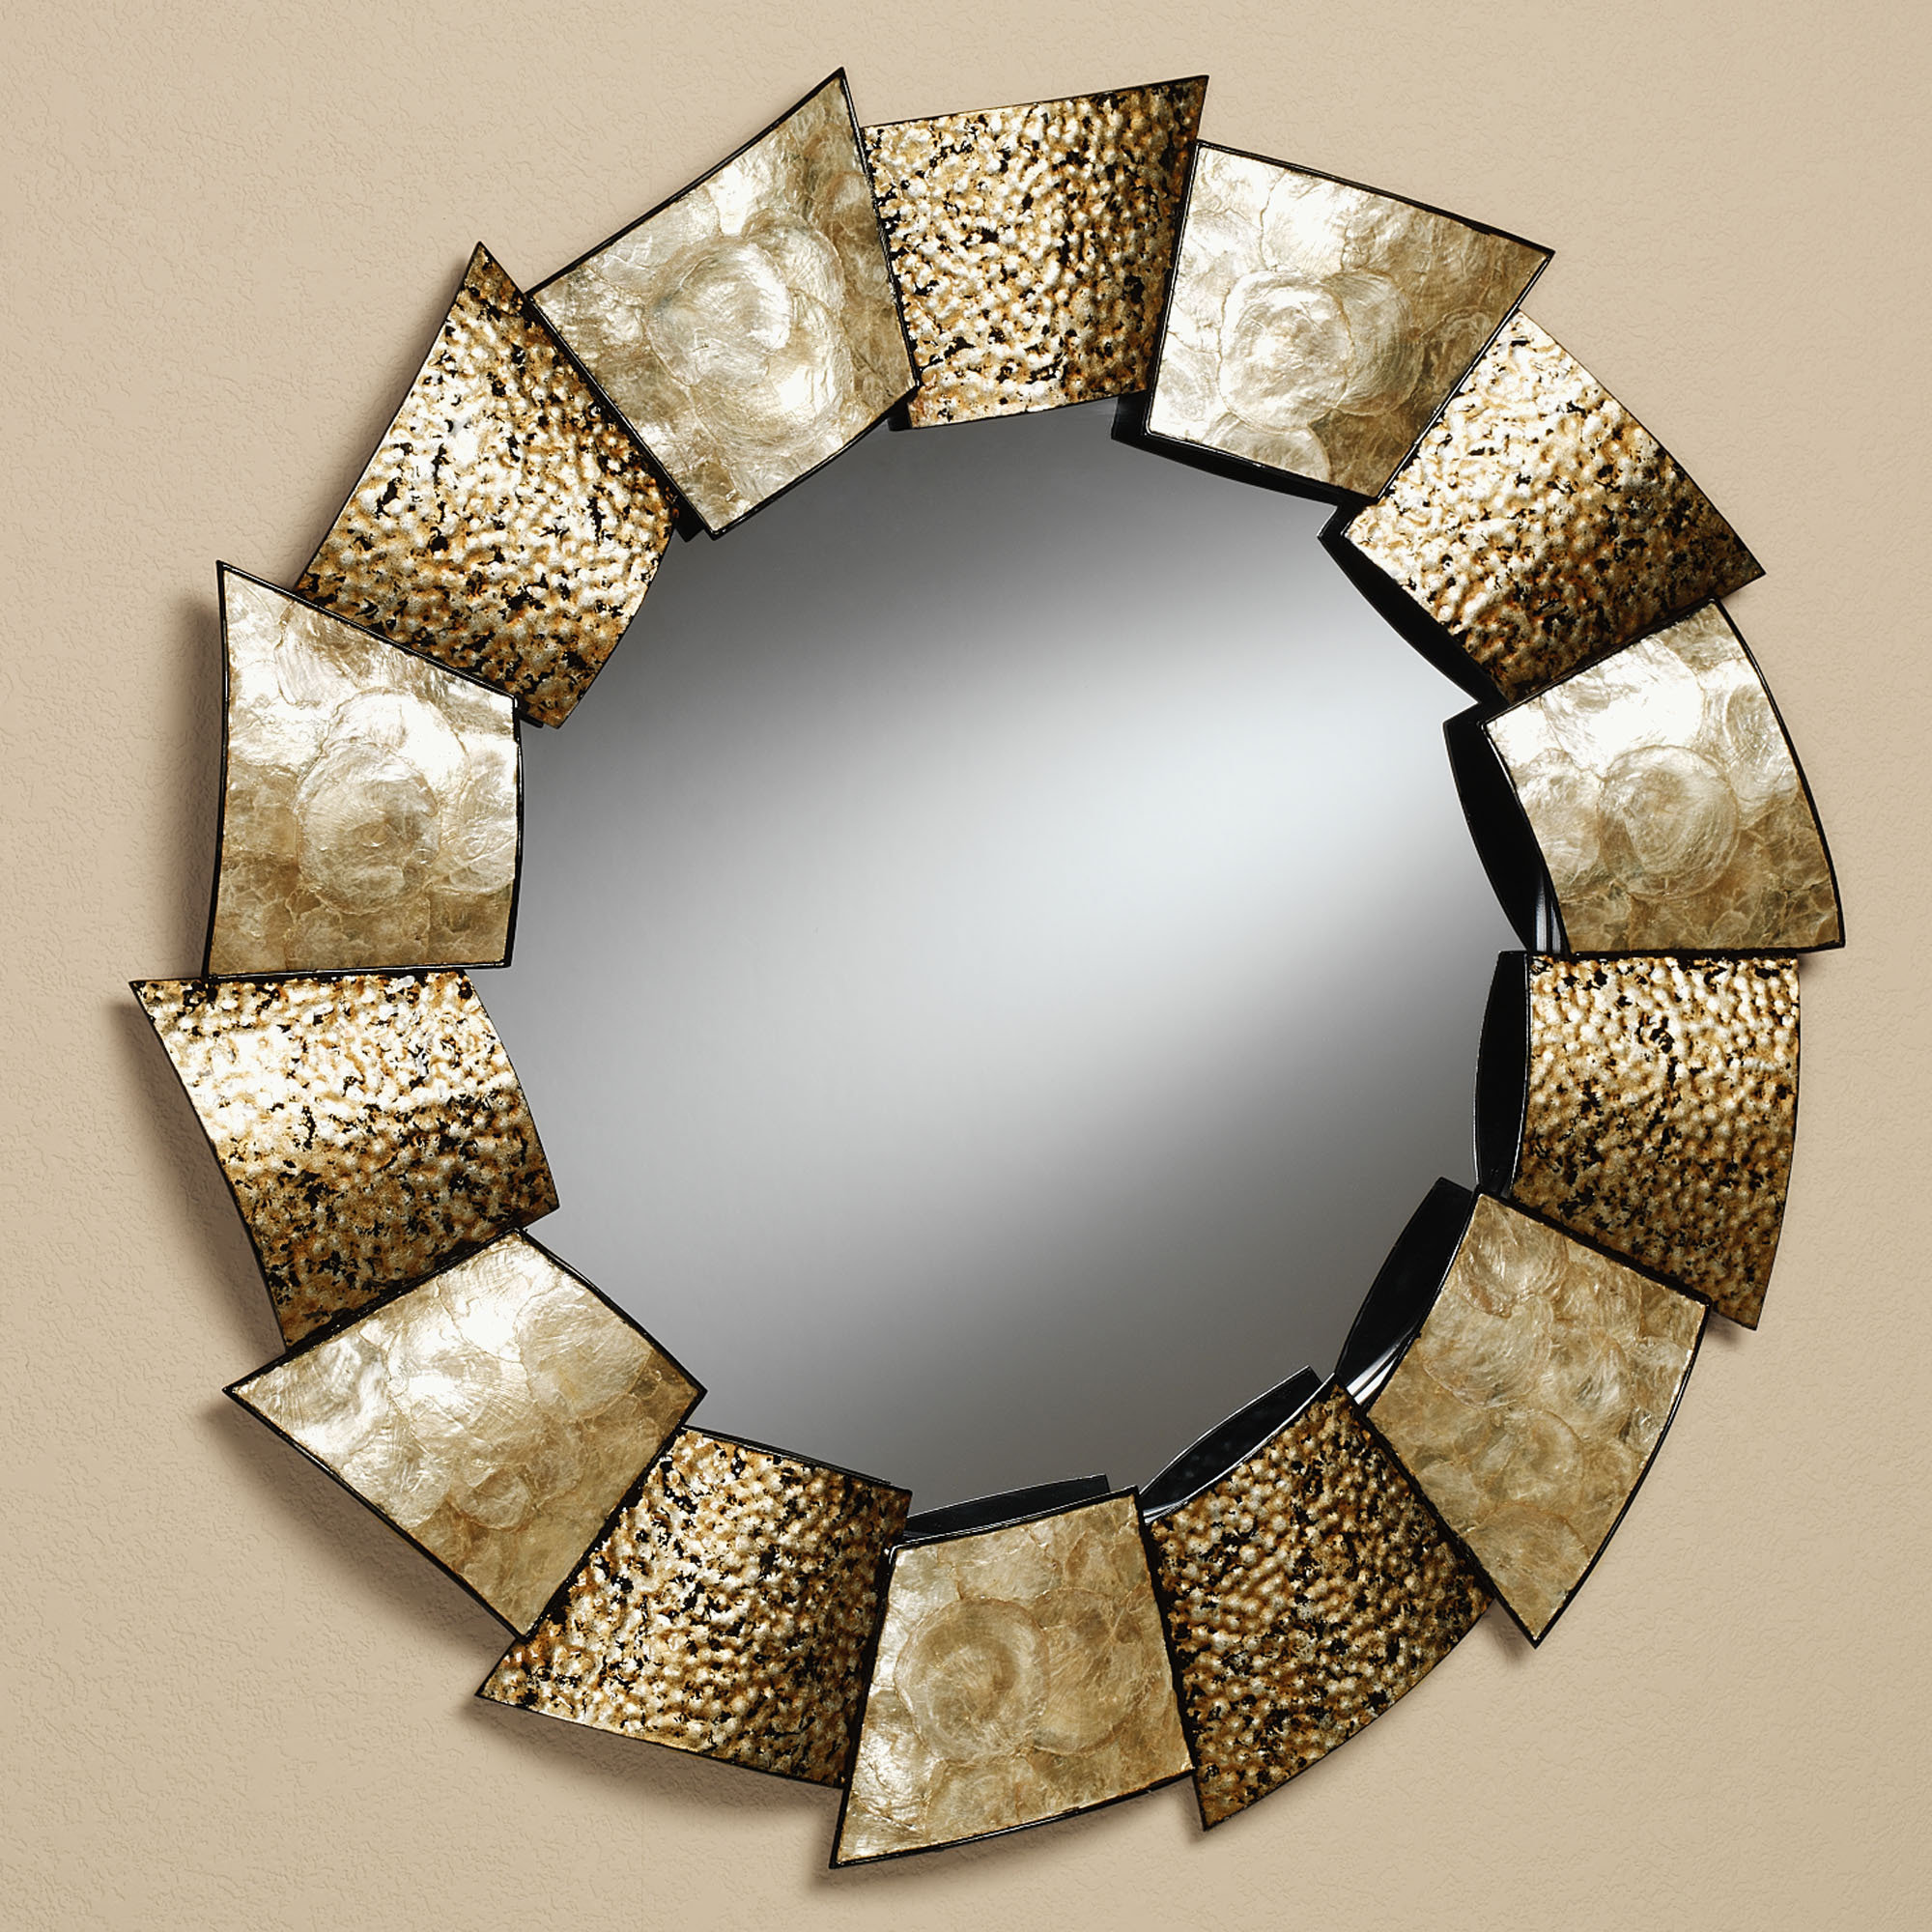 wall mirrors Decoration Designs Guide : wall mirrors 2 from clarathomson.com size 2000 x 2000 jpeg 774kB